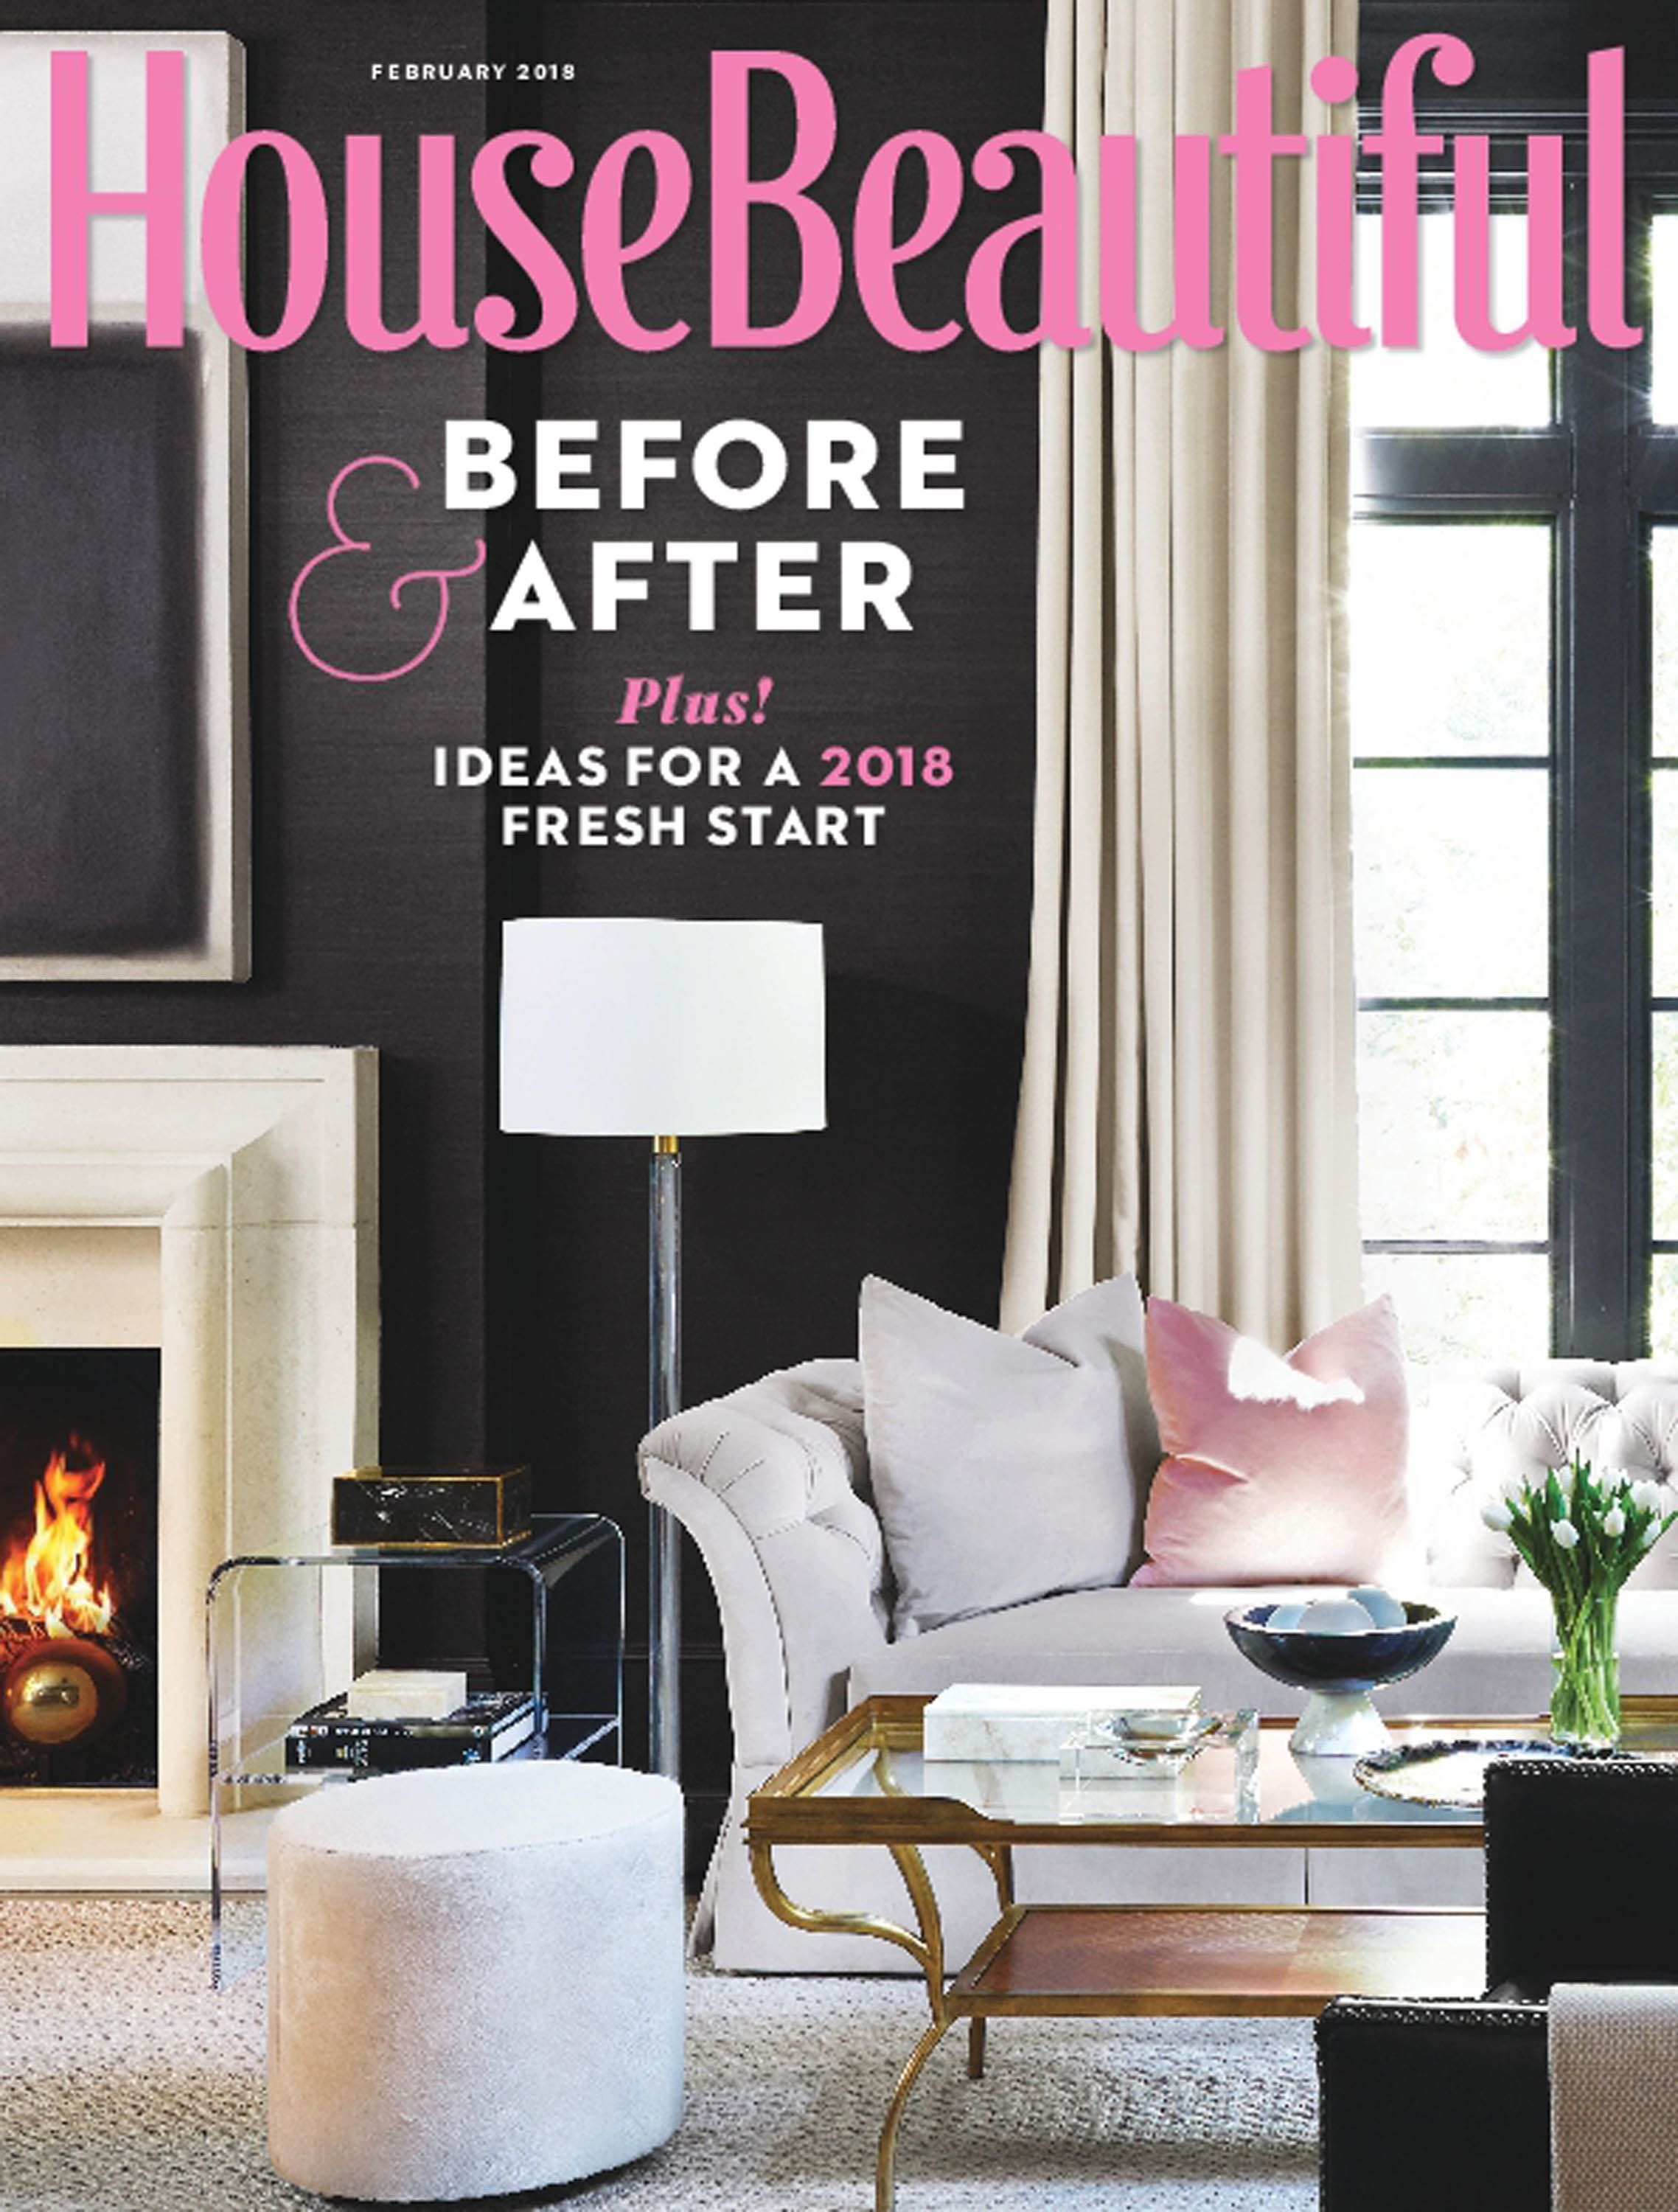 House Beautiful February 2018 Cover